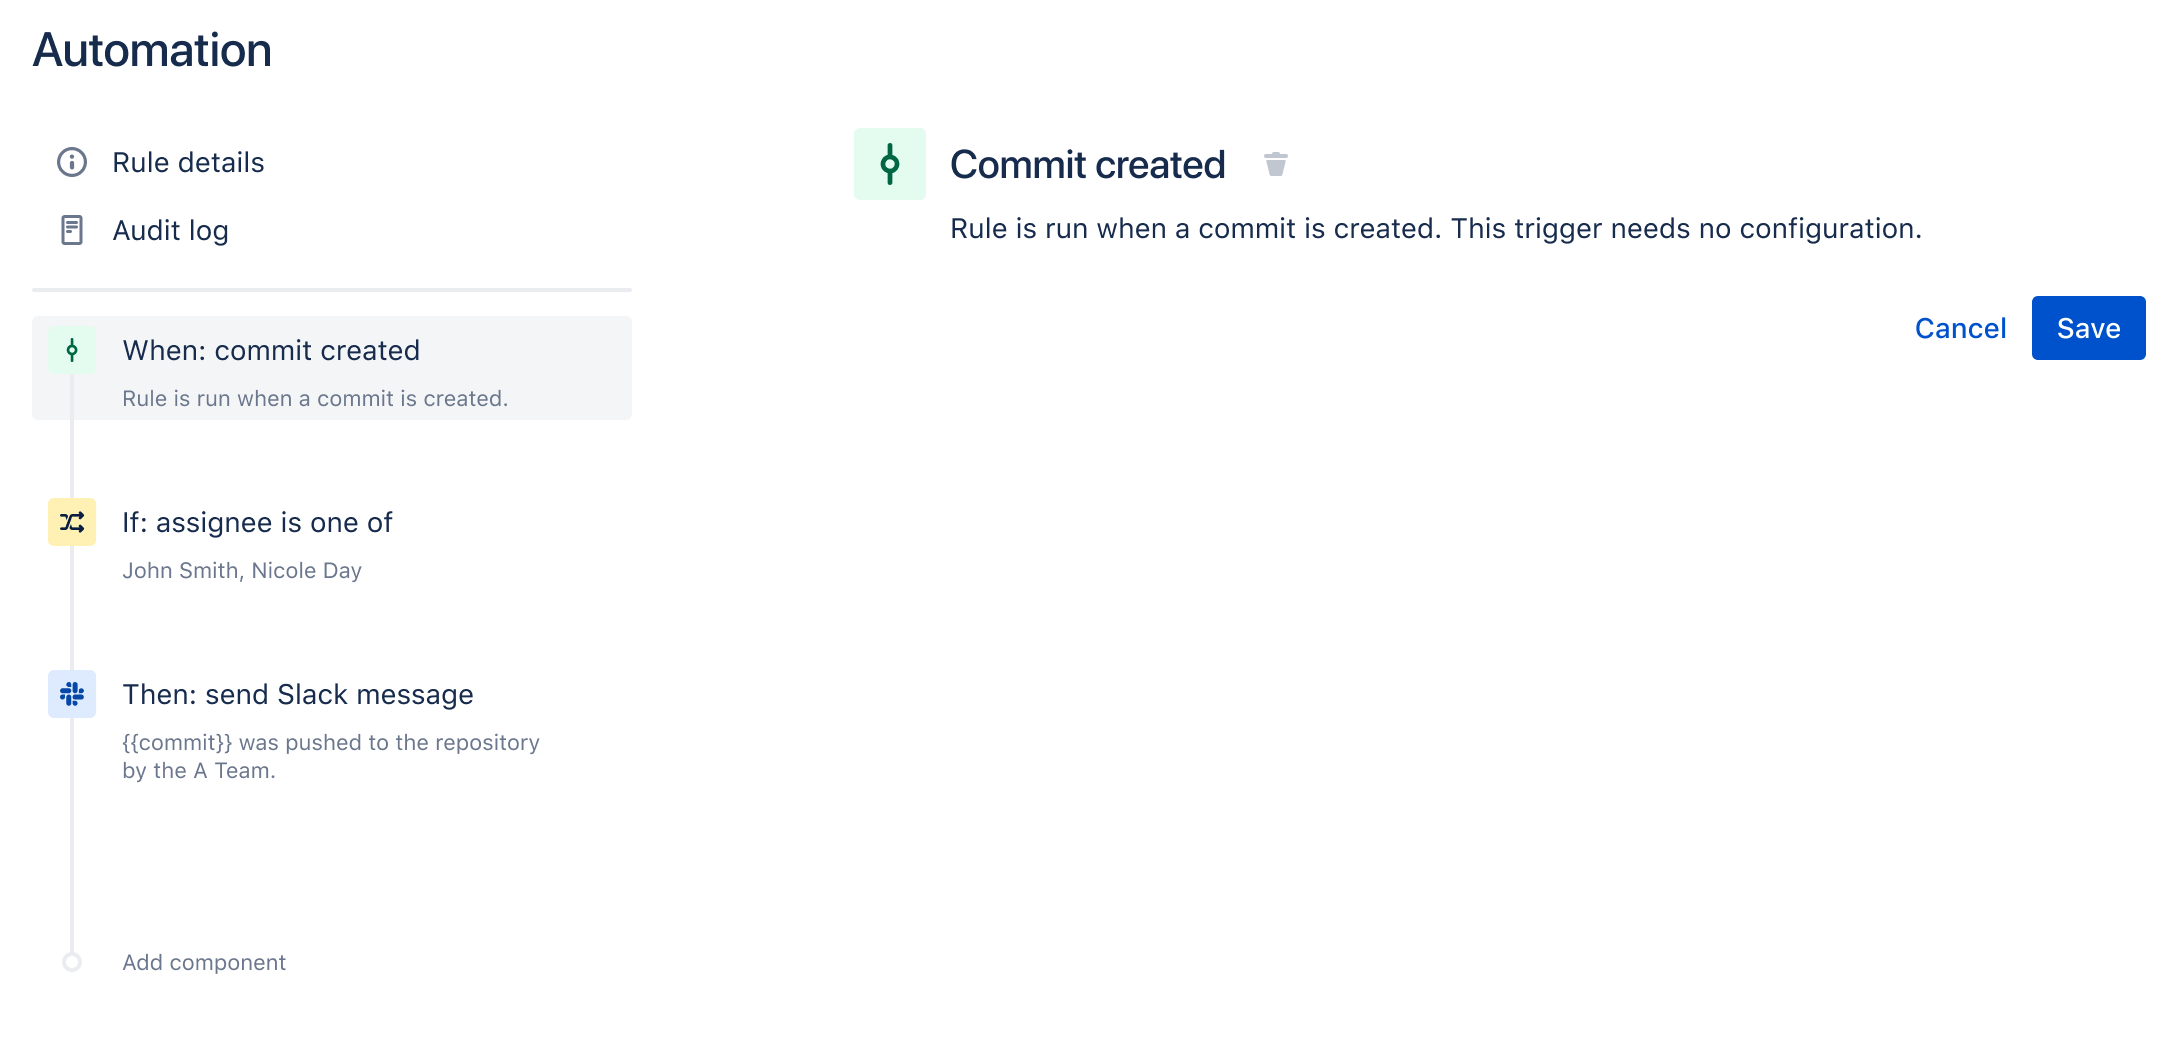 <strong>Commit created</strong> (Commit créé)